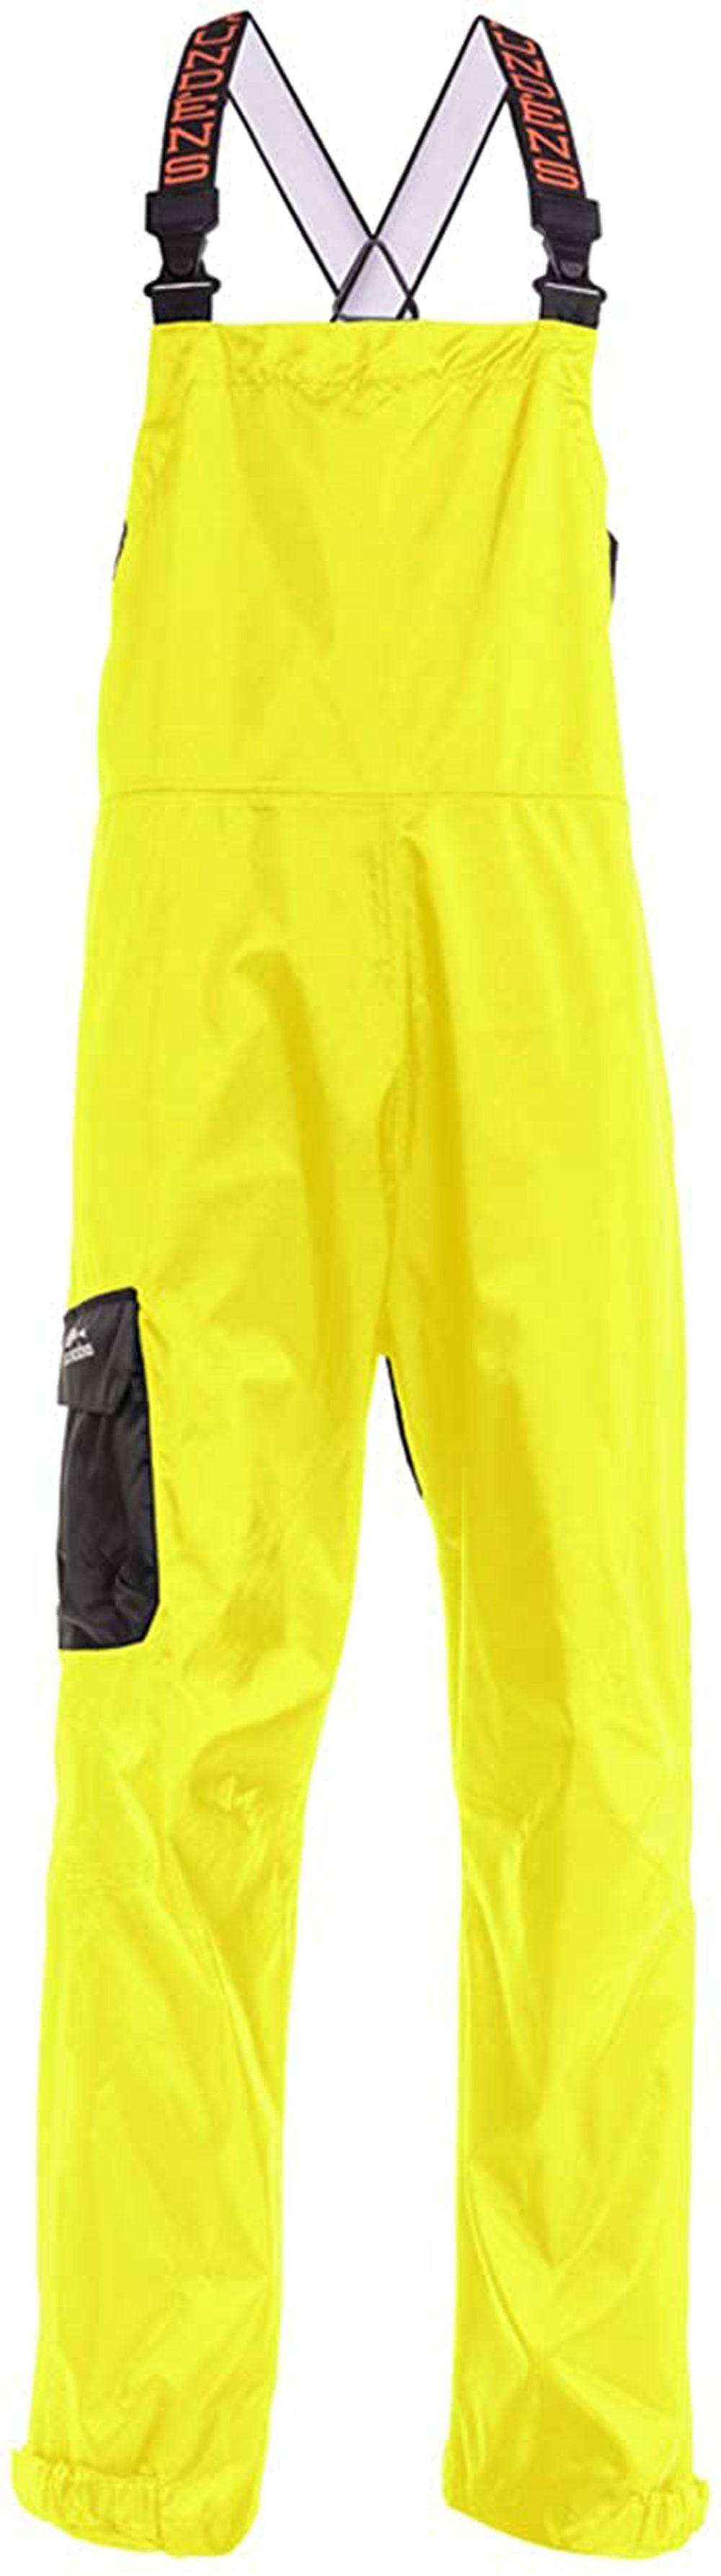 Weather Watch Bib in Hi Vis Yellow color